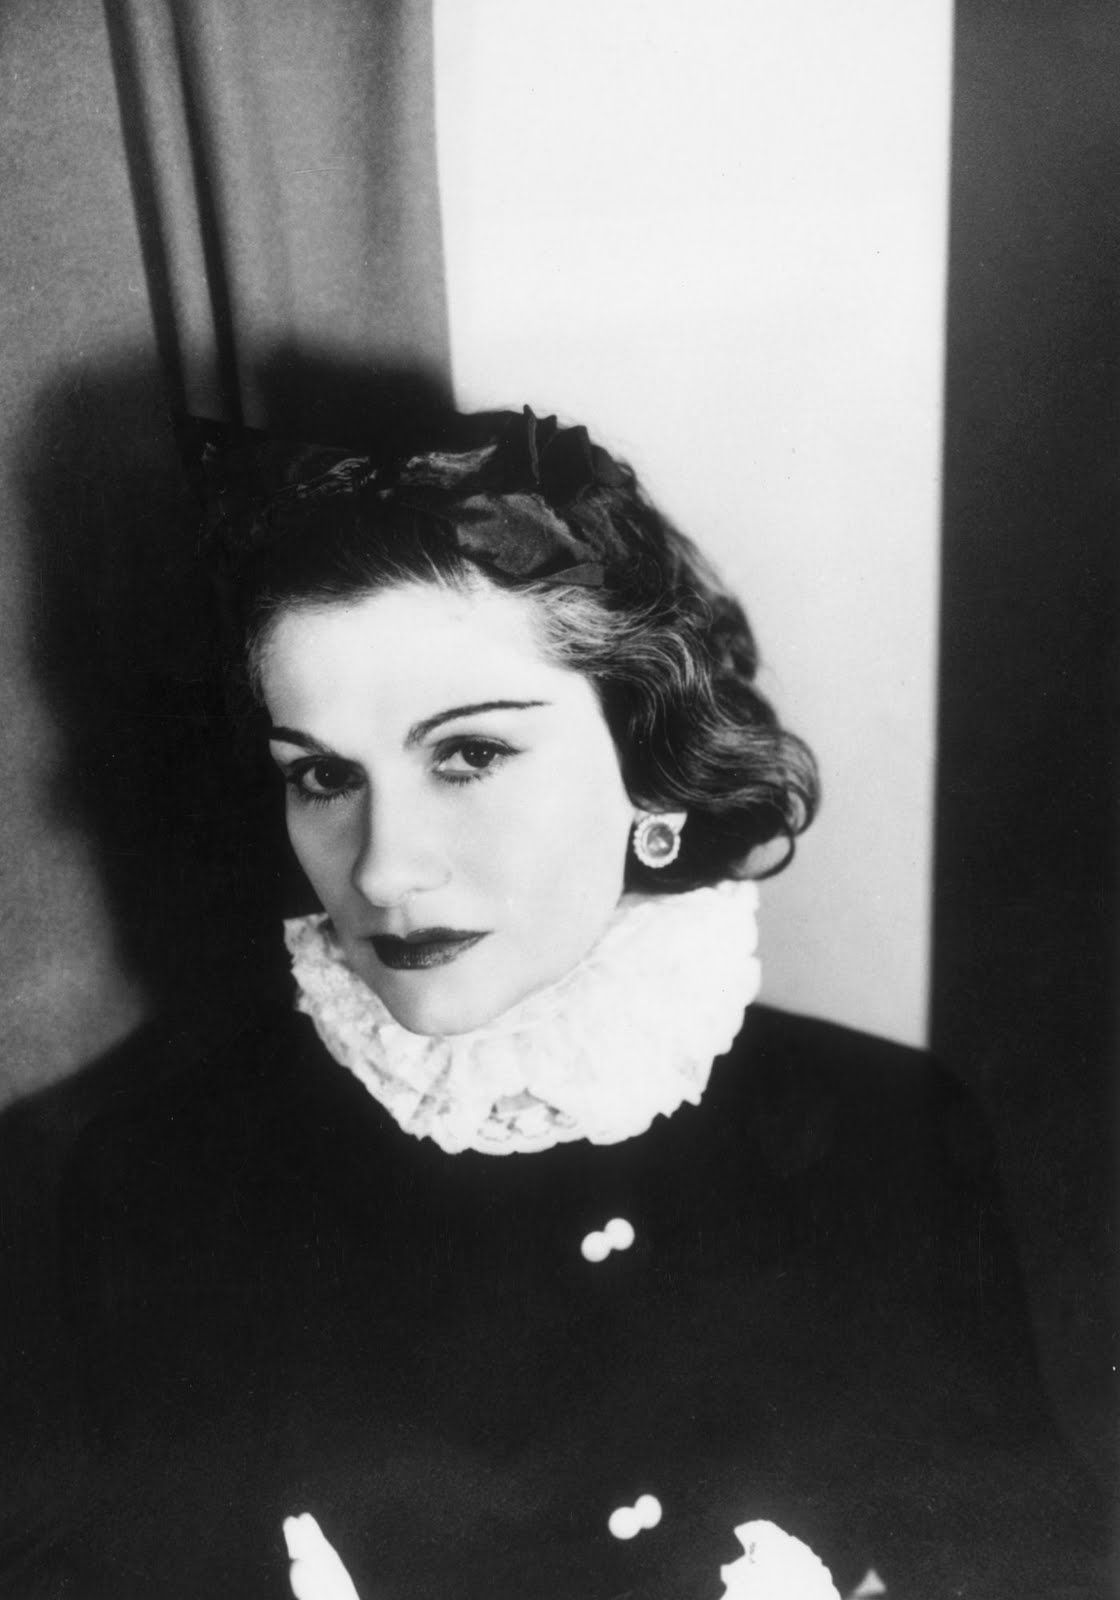 17 Best images about Coco Chanel on Pinterest | Fashion designers ...